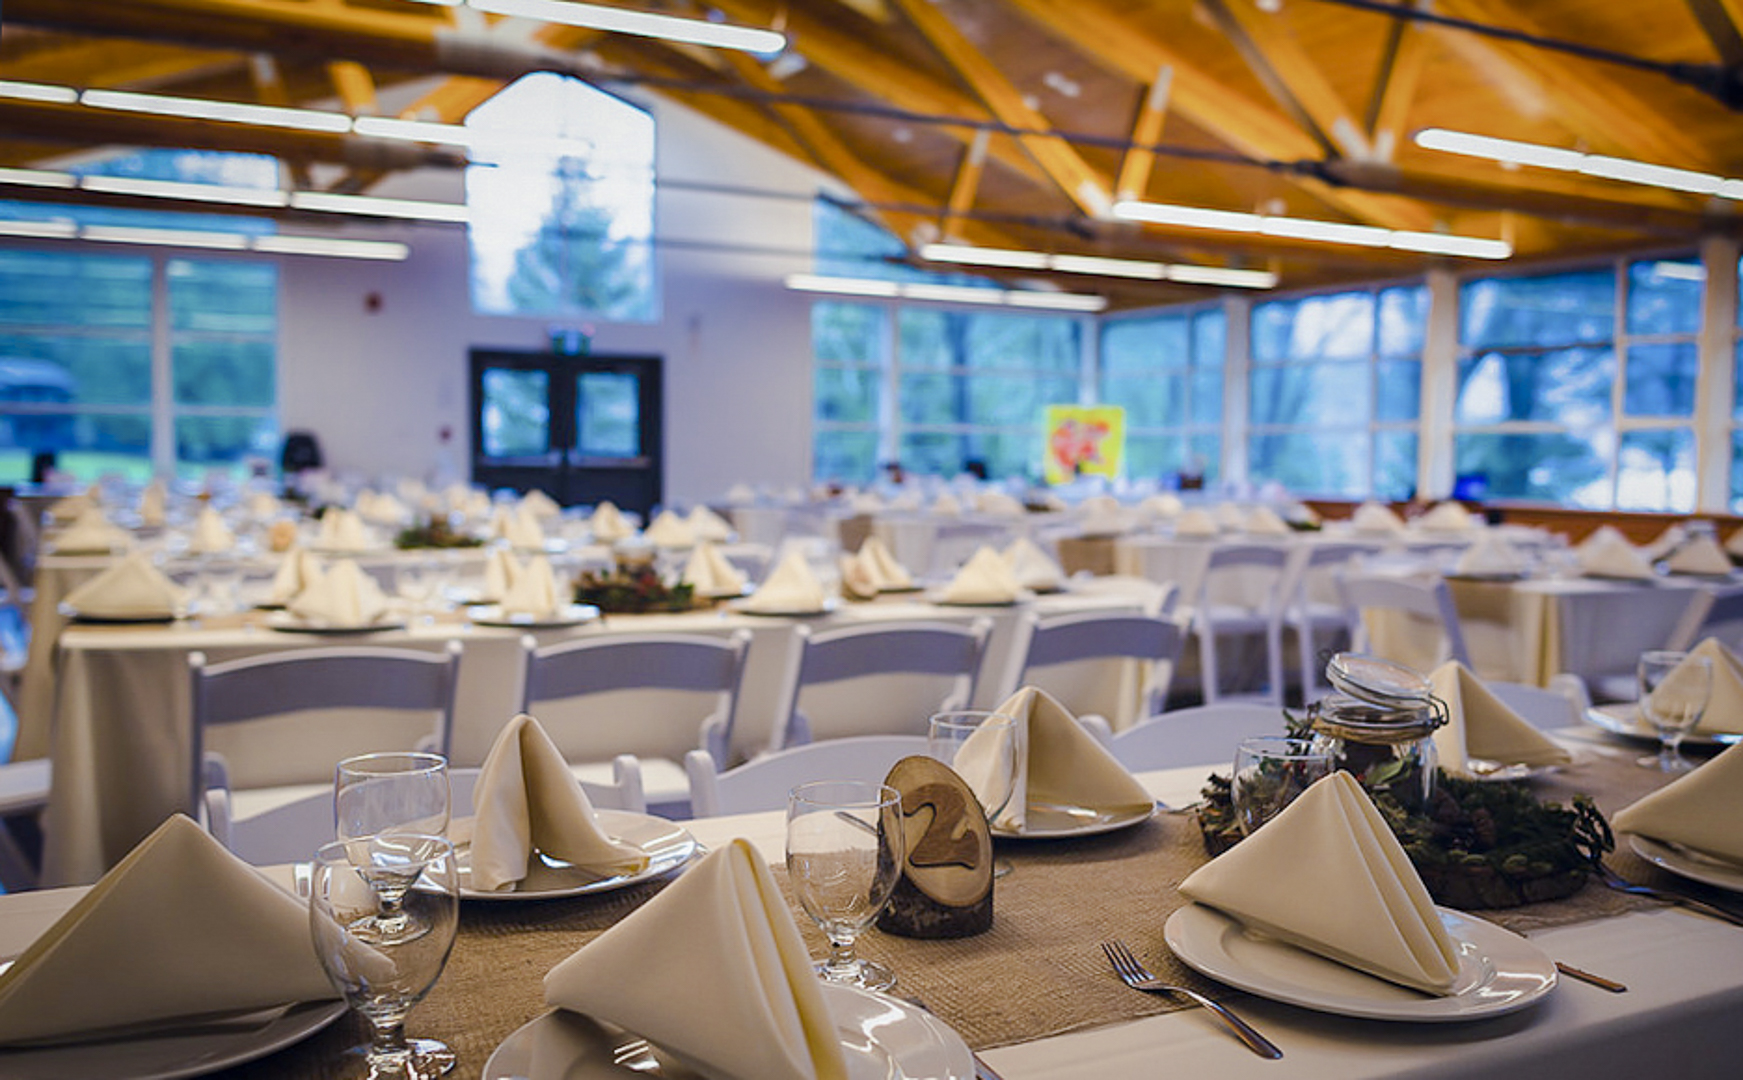 Fircom_Dining_Hall_Completed_Project_Web-8.jpg